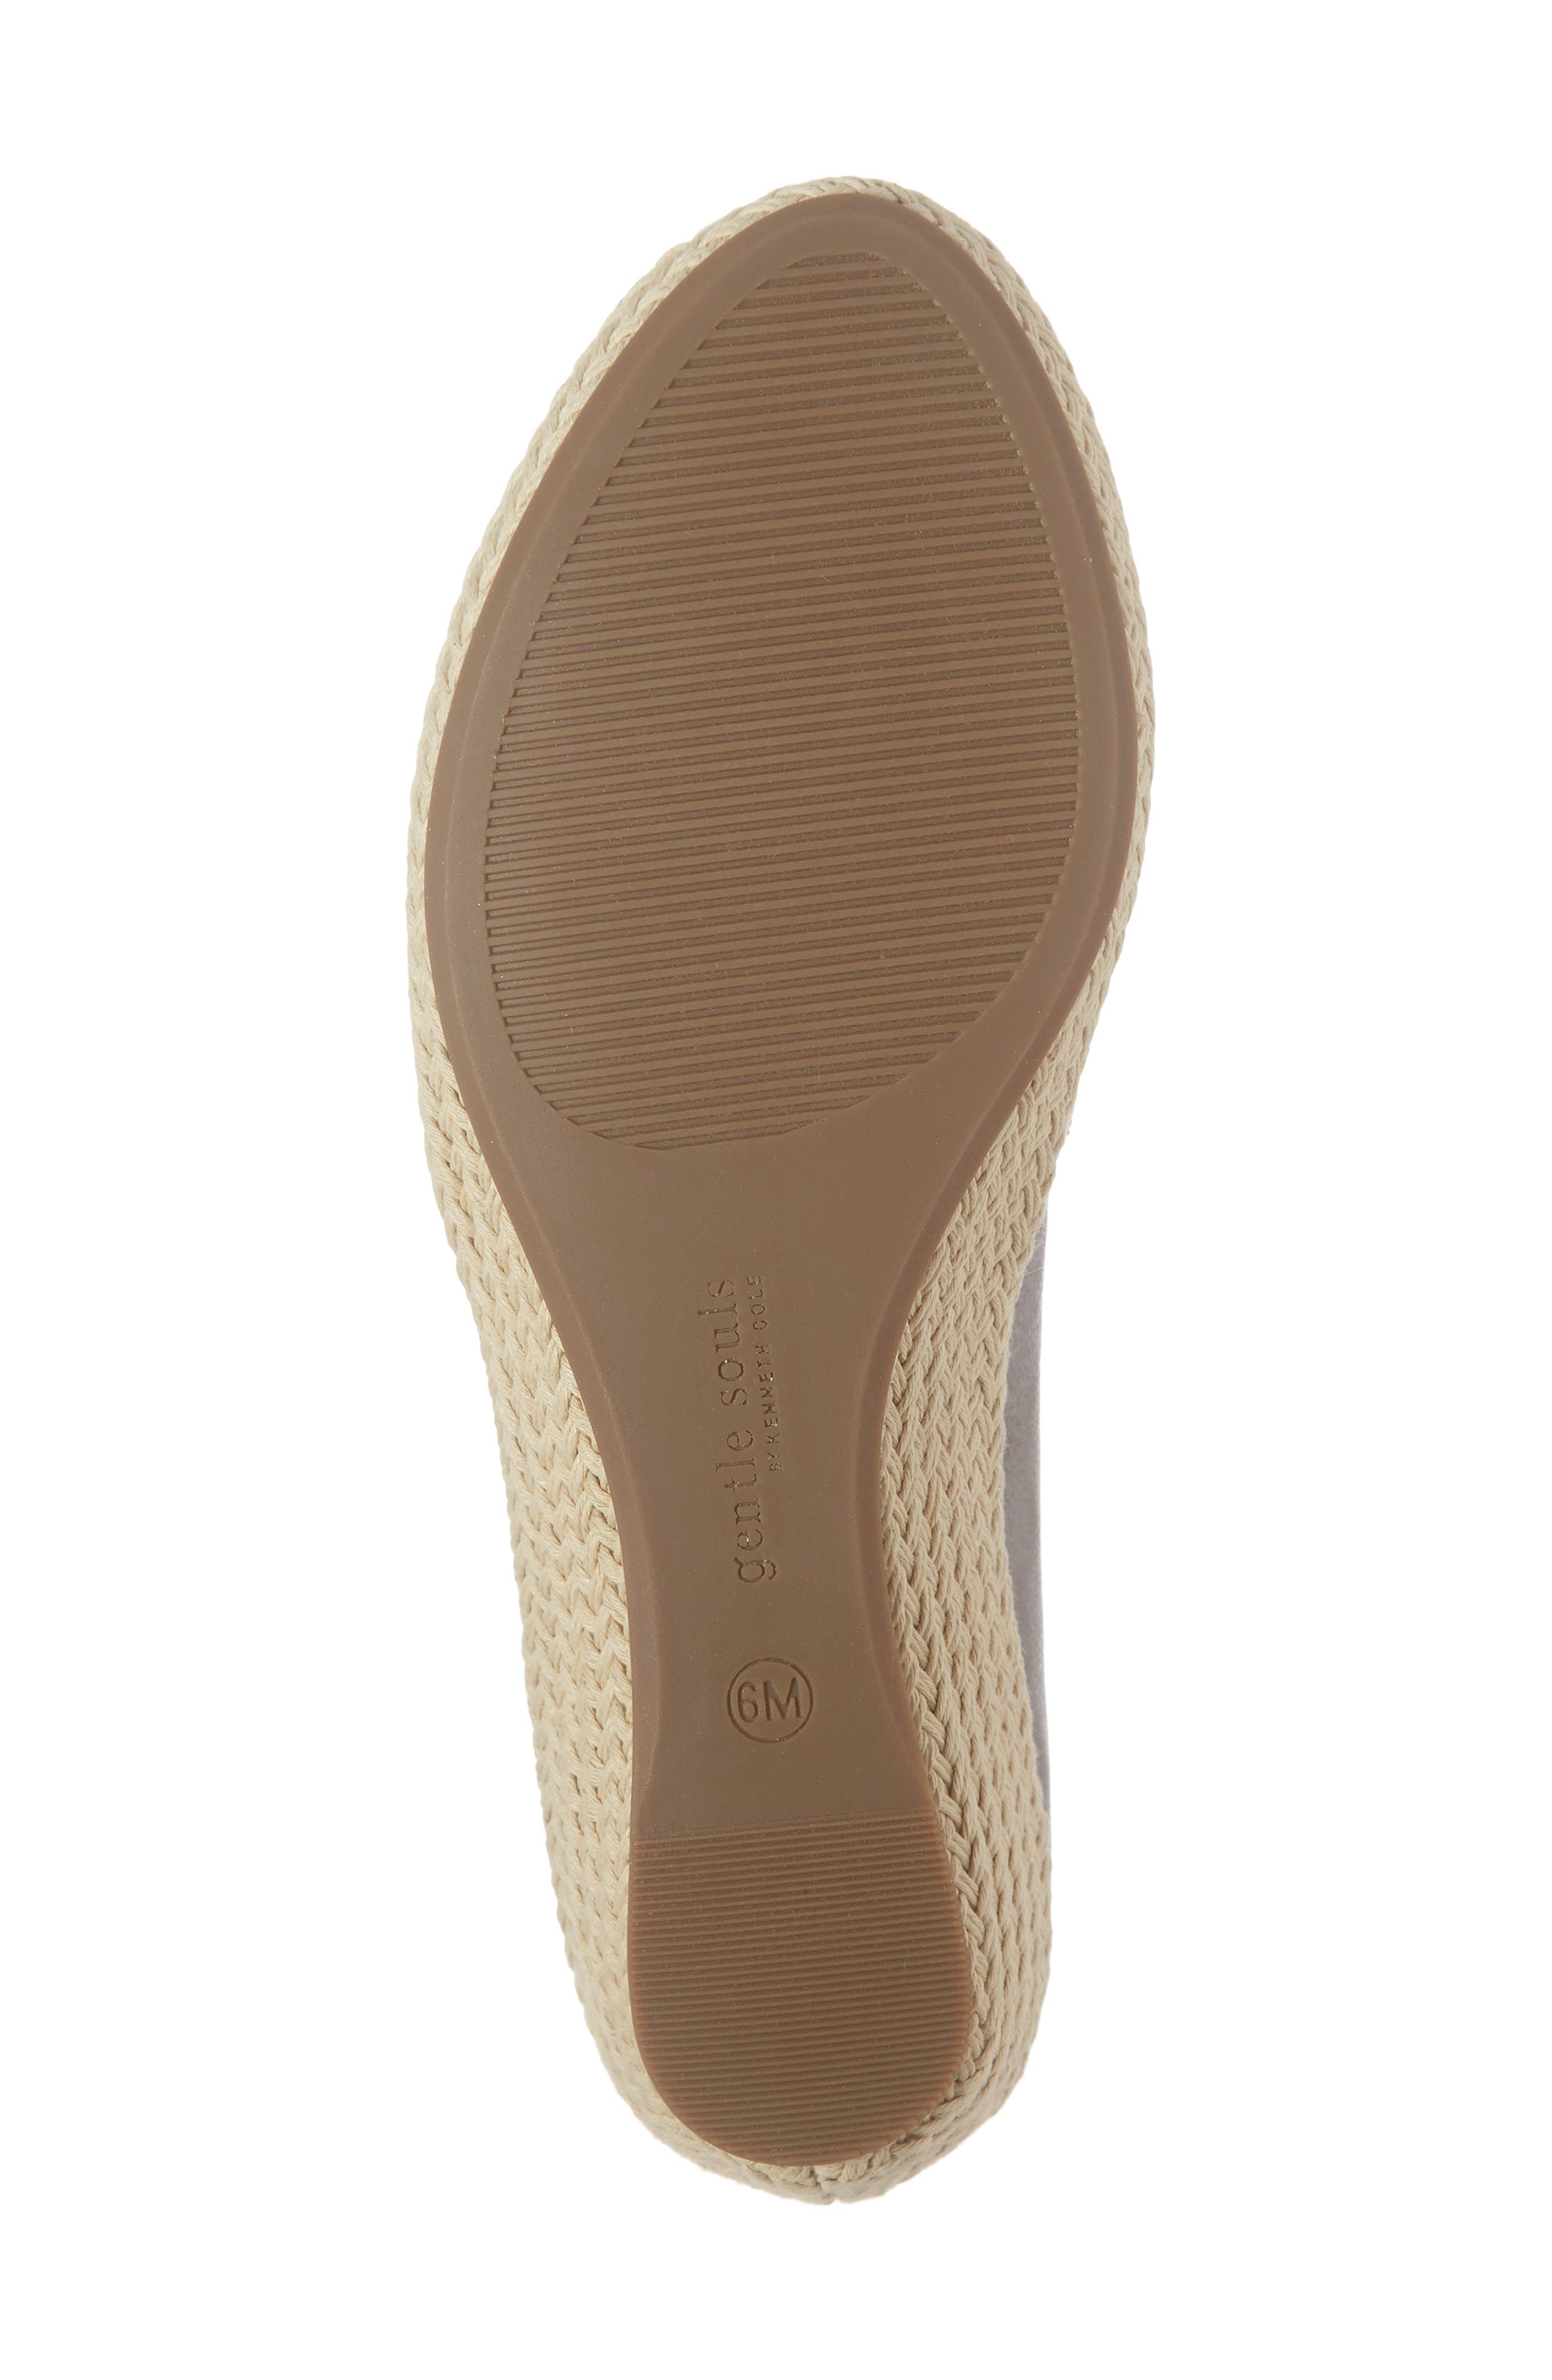 GENTLE SOULS BY KENNETH COLE, Luca Open Toe Wedge Espadrille, Alternate thumbnail 6, color, PEWTER METALLIC LEATHER